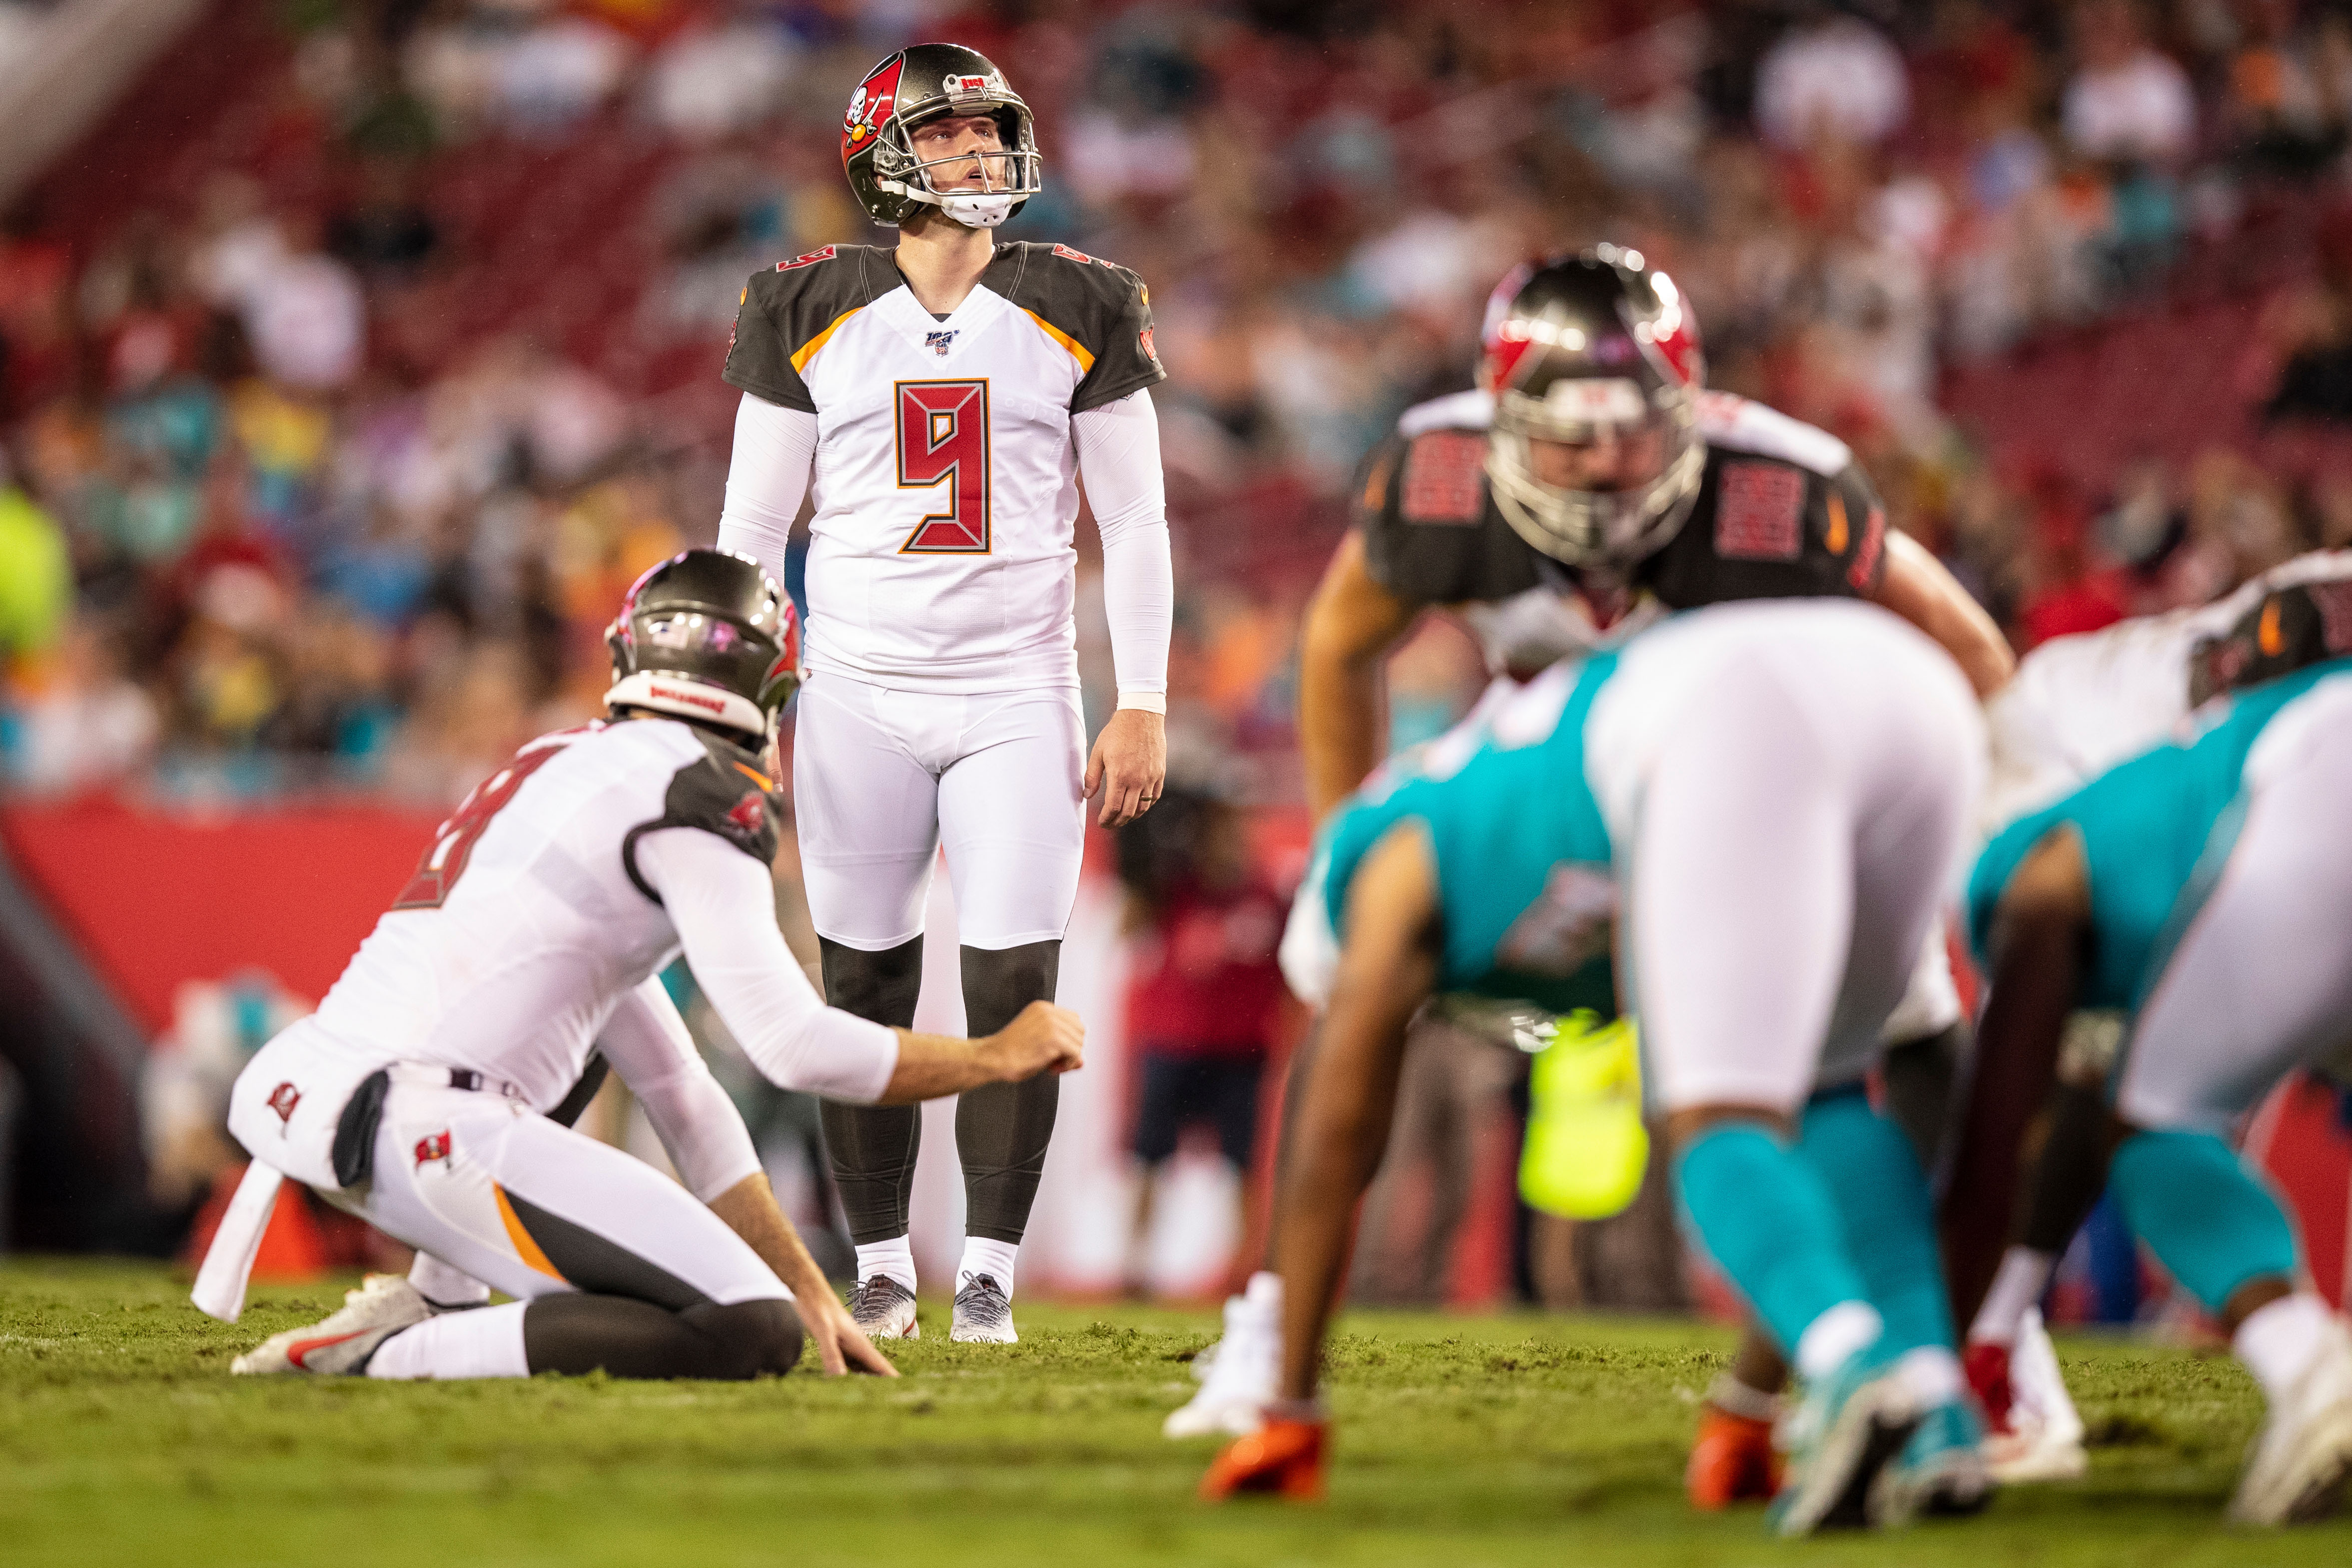 Kicker Matt Gay, No. 9, of the Tampa Bay Buccaneers lines up a kick during the preseason game against the Miami Dolphins at Raymond James Stadium. The Buccaneers won the game, 16-14.